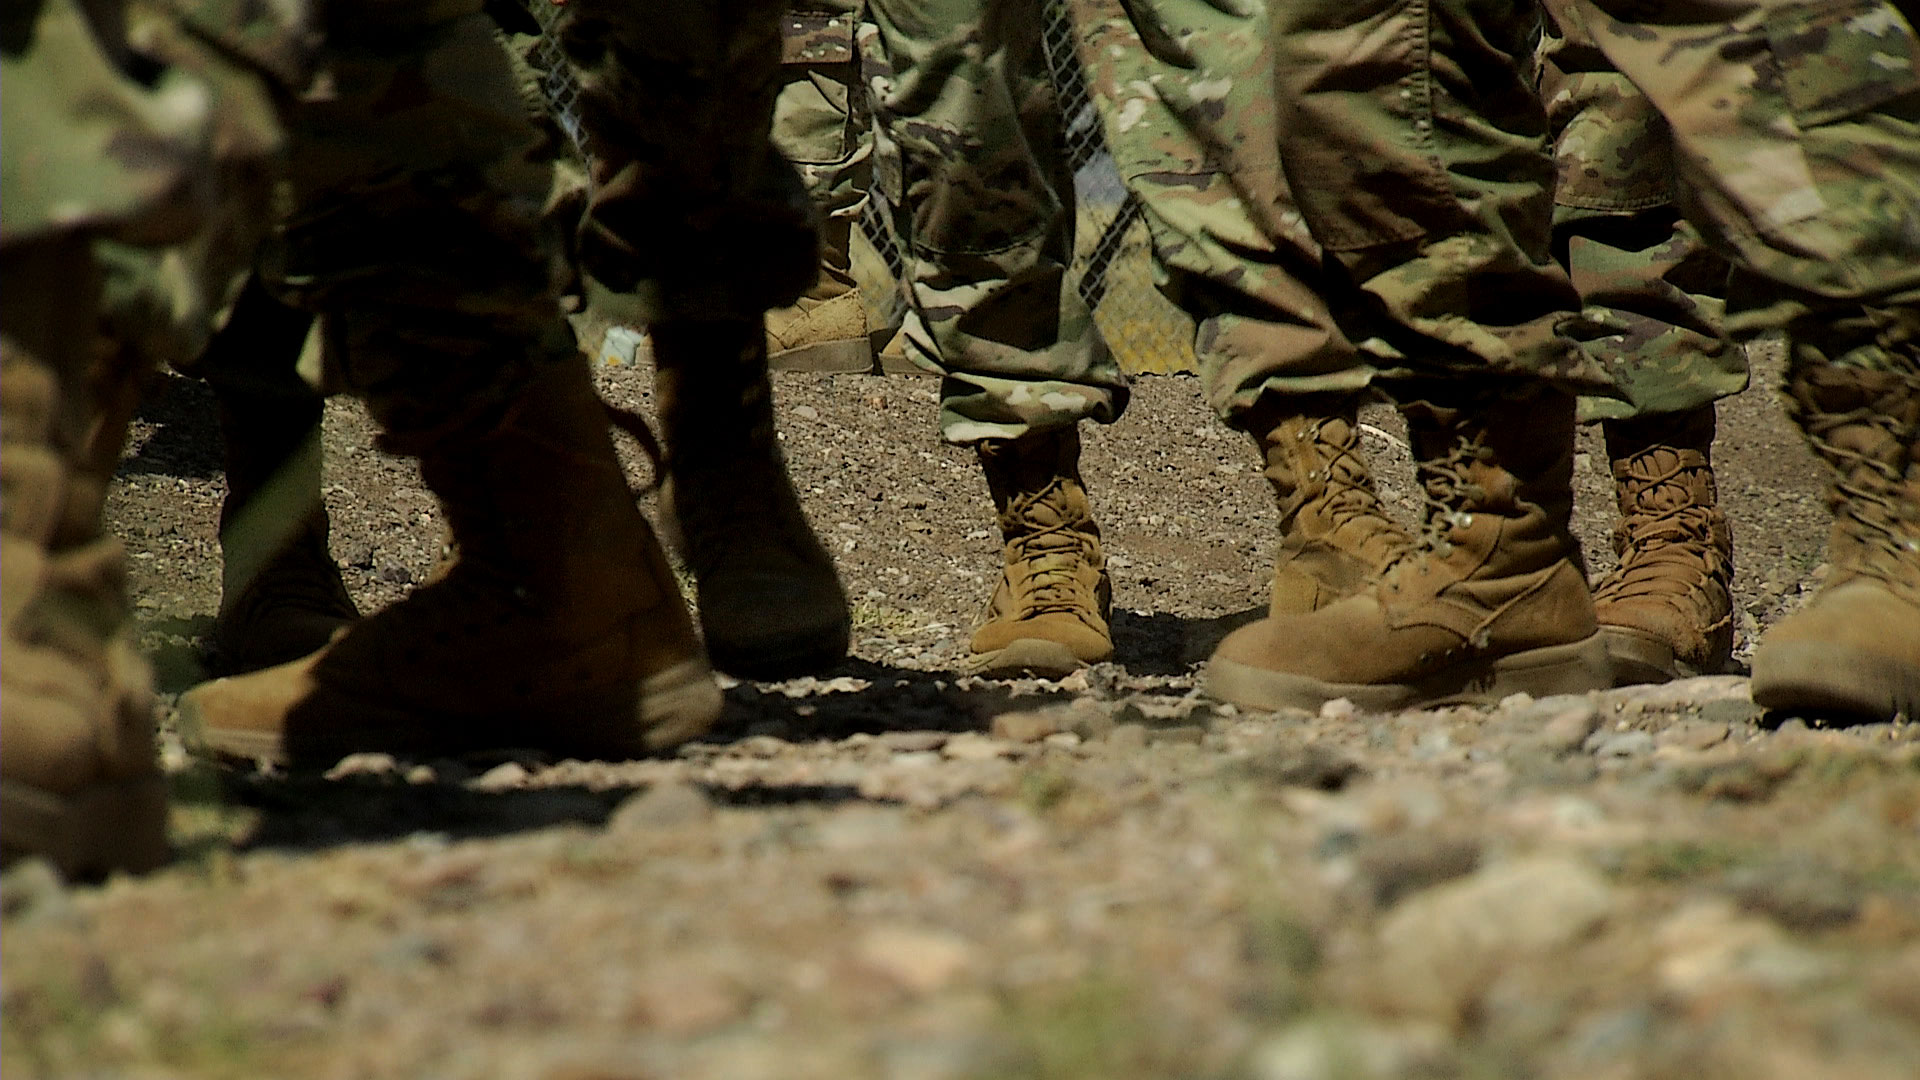 A look at soldiers' boots as they make their way between sessions during training at Fort Huachuca, October 2019.